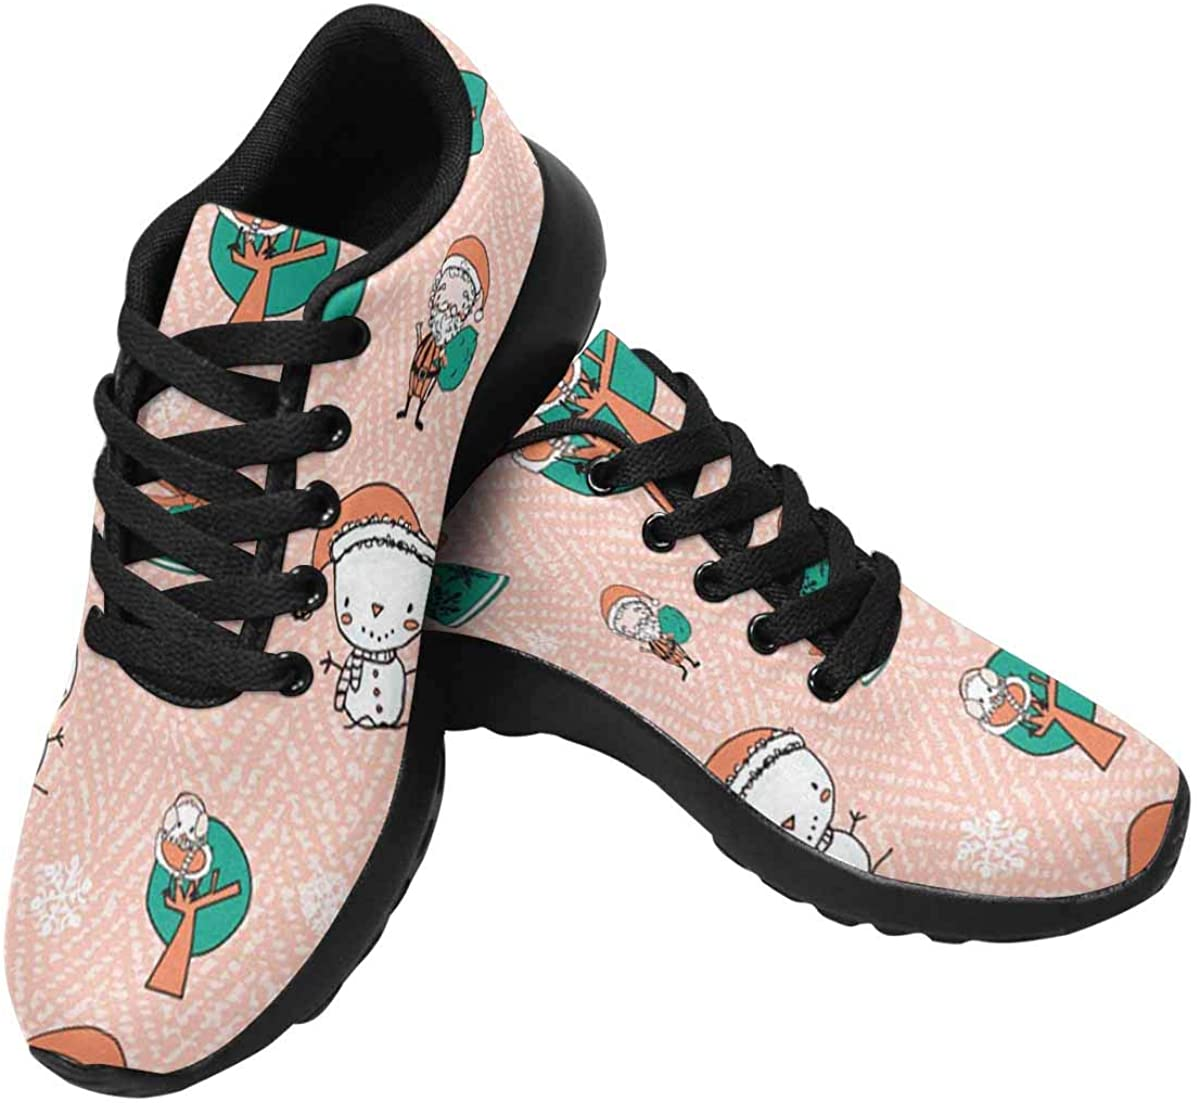 InterestPrint Women's Running Shoes - Casual Breathable Athletic Tennis Sneakers Christmas Hat Snowman